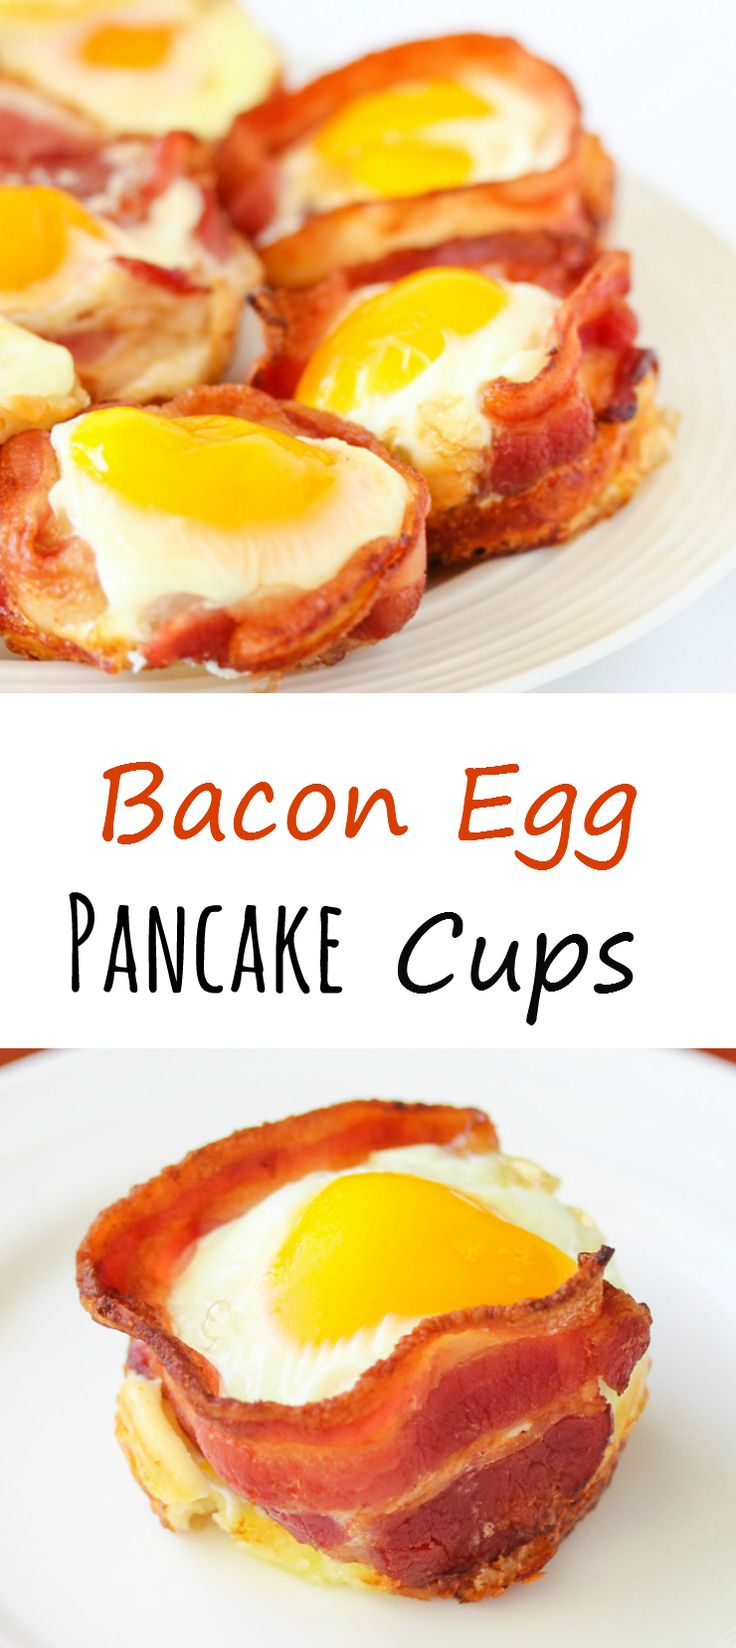 Bacon Egg Pancake Cups. All your favorite breakfast items wrapped into one neat package!